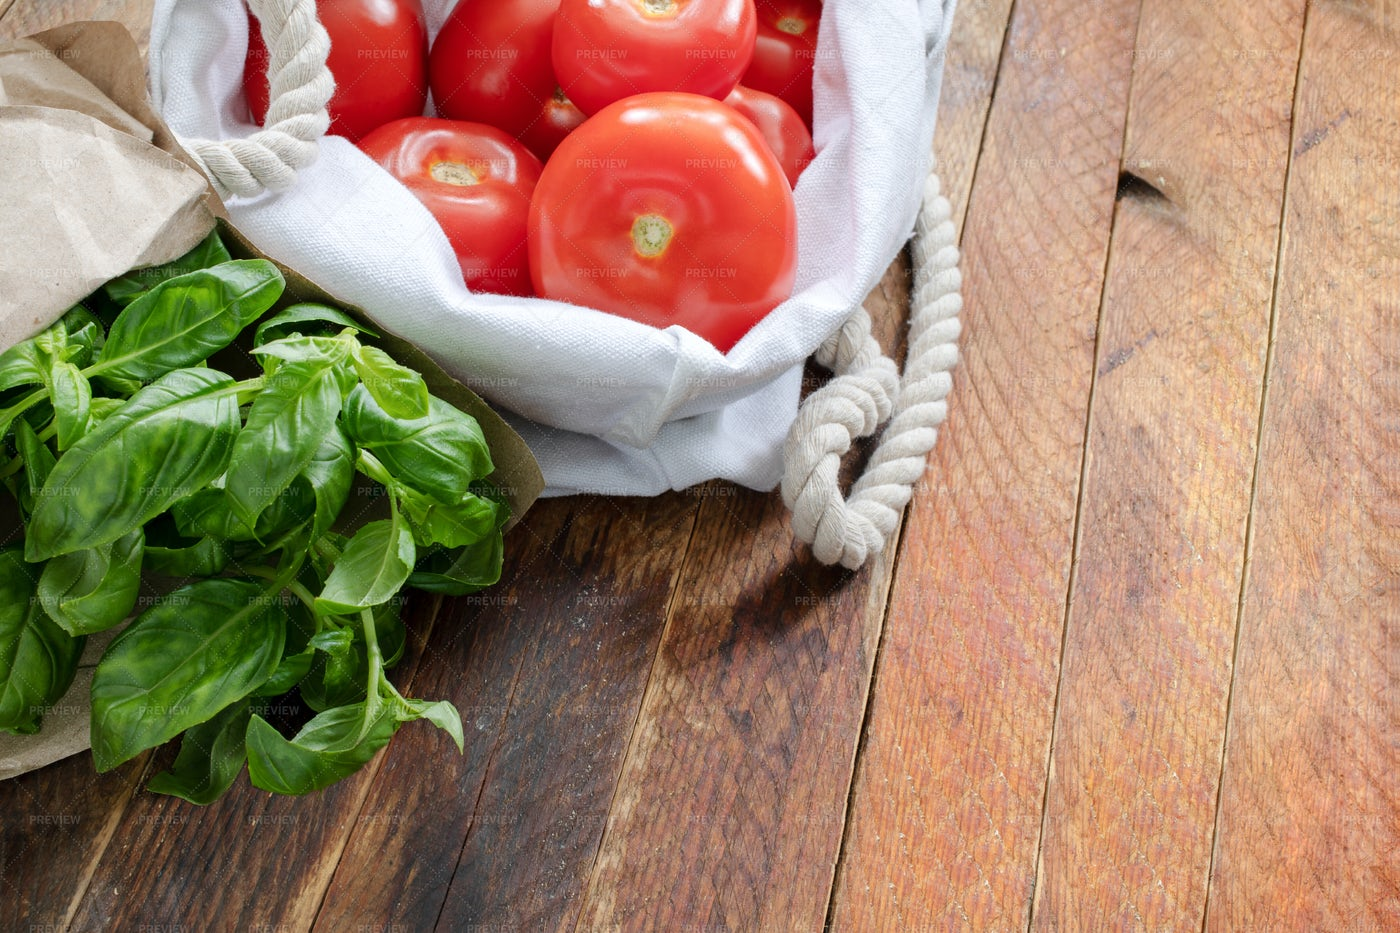 Tomatoes And Basil In An Eco Bag: Stock Photos